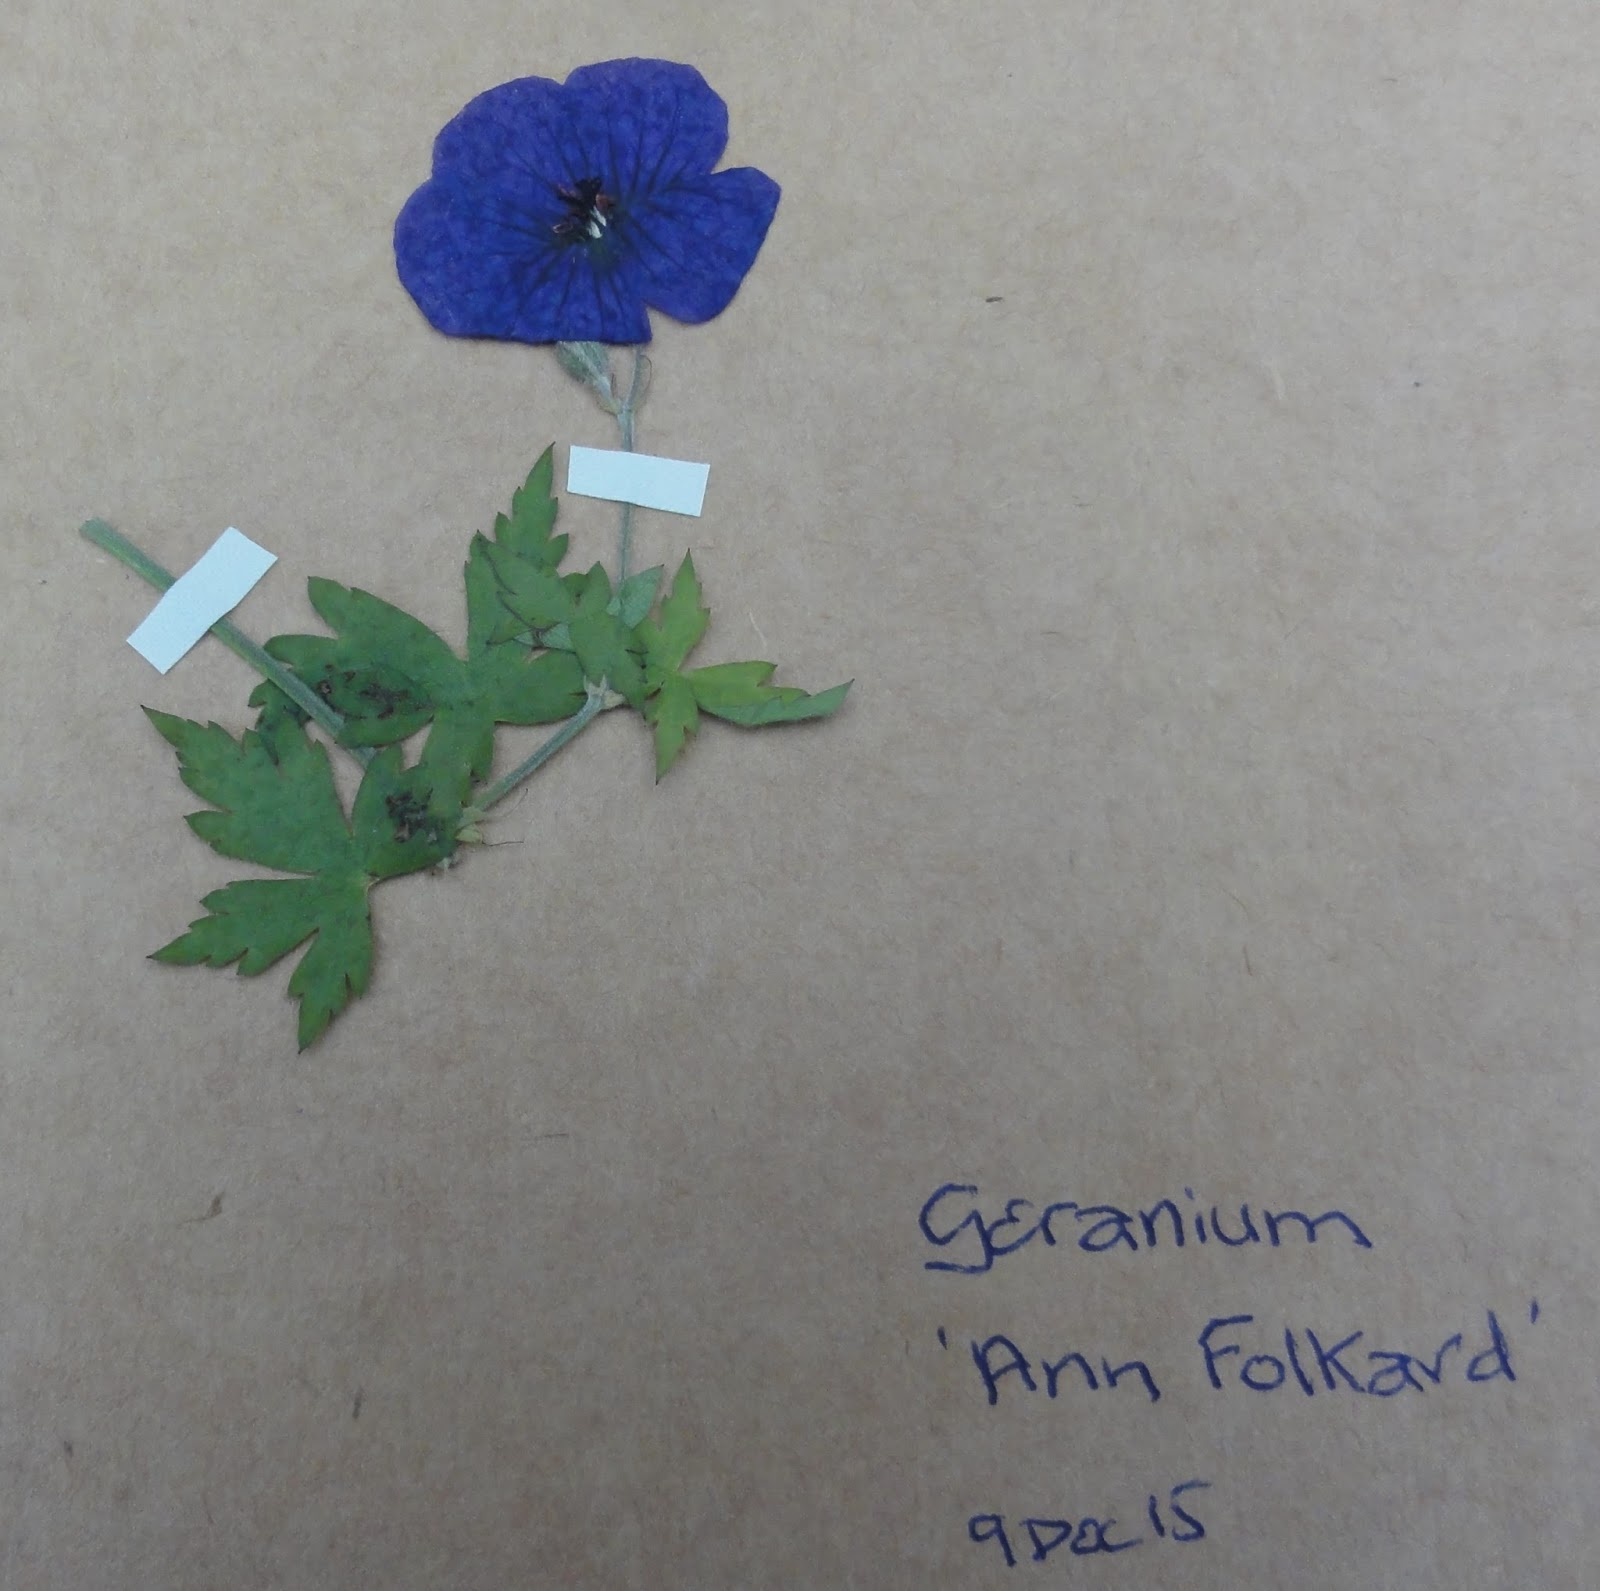 How to scrapbook pressed flowers - I Checked How The Pressings Were Going A Week Ago All Fine And Yesterday I Completed Process Of Adding The Pressed Flowers And Foliage To My Scrapbook